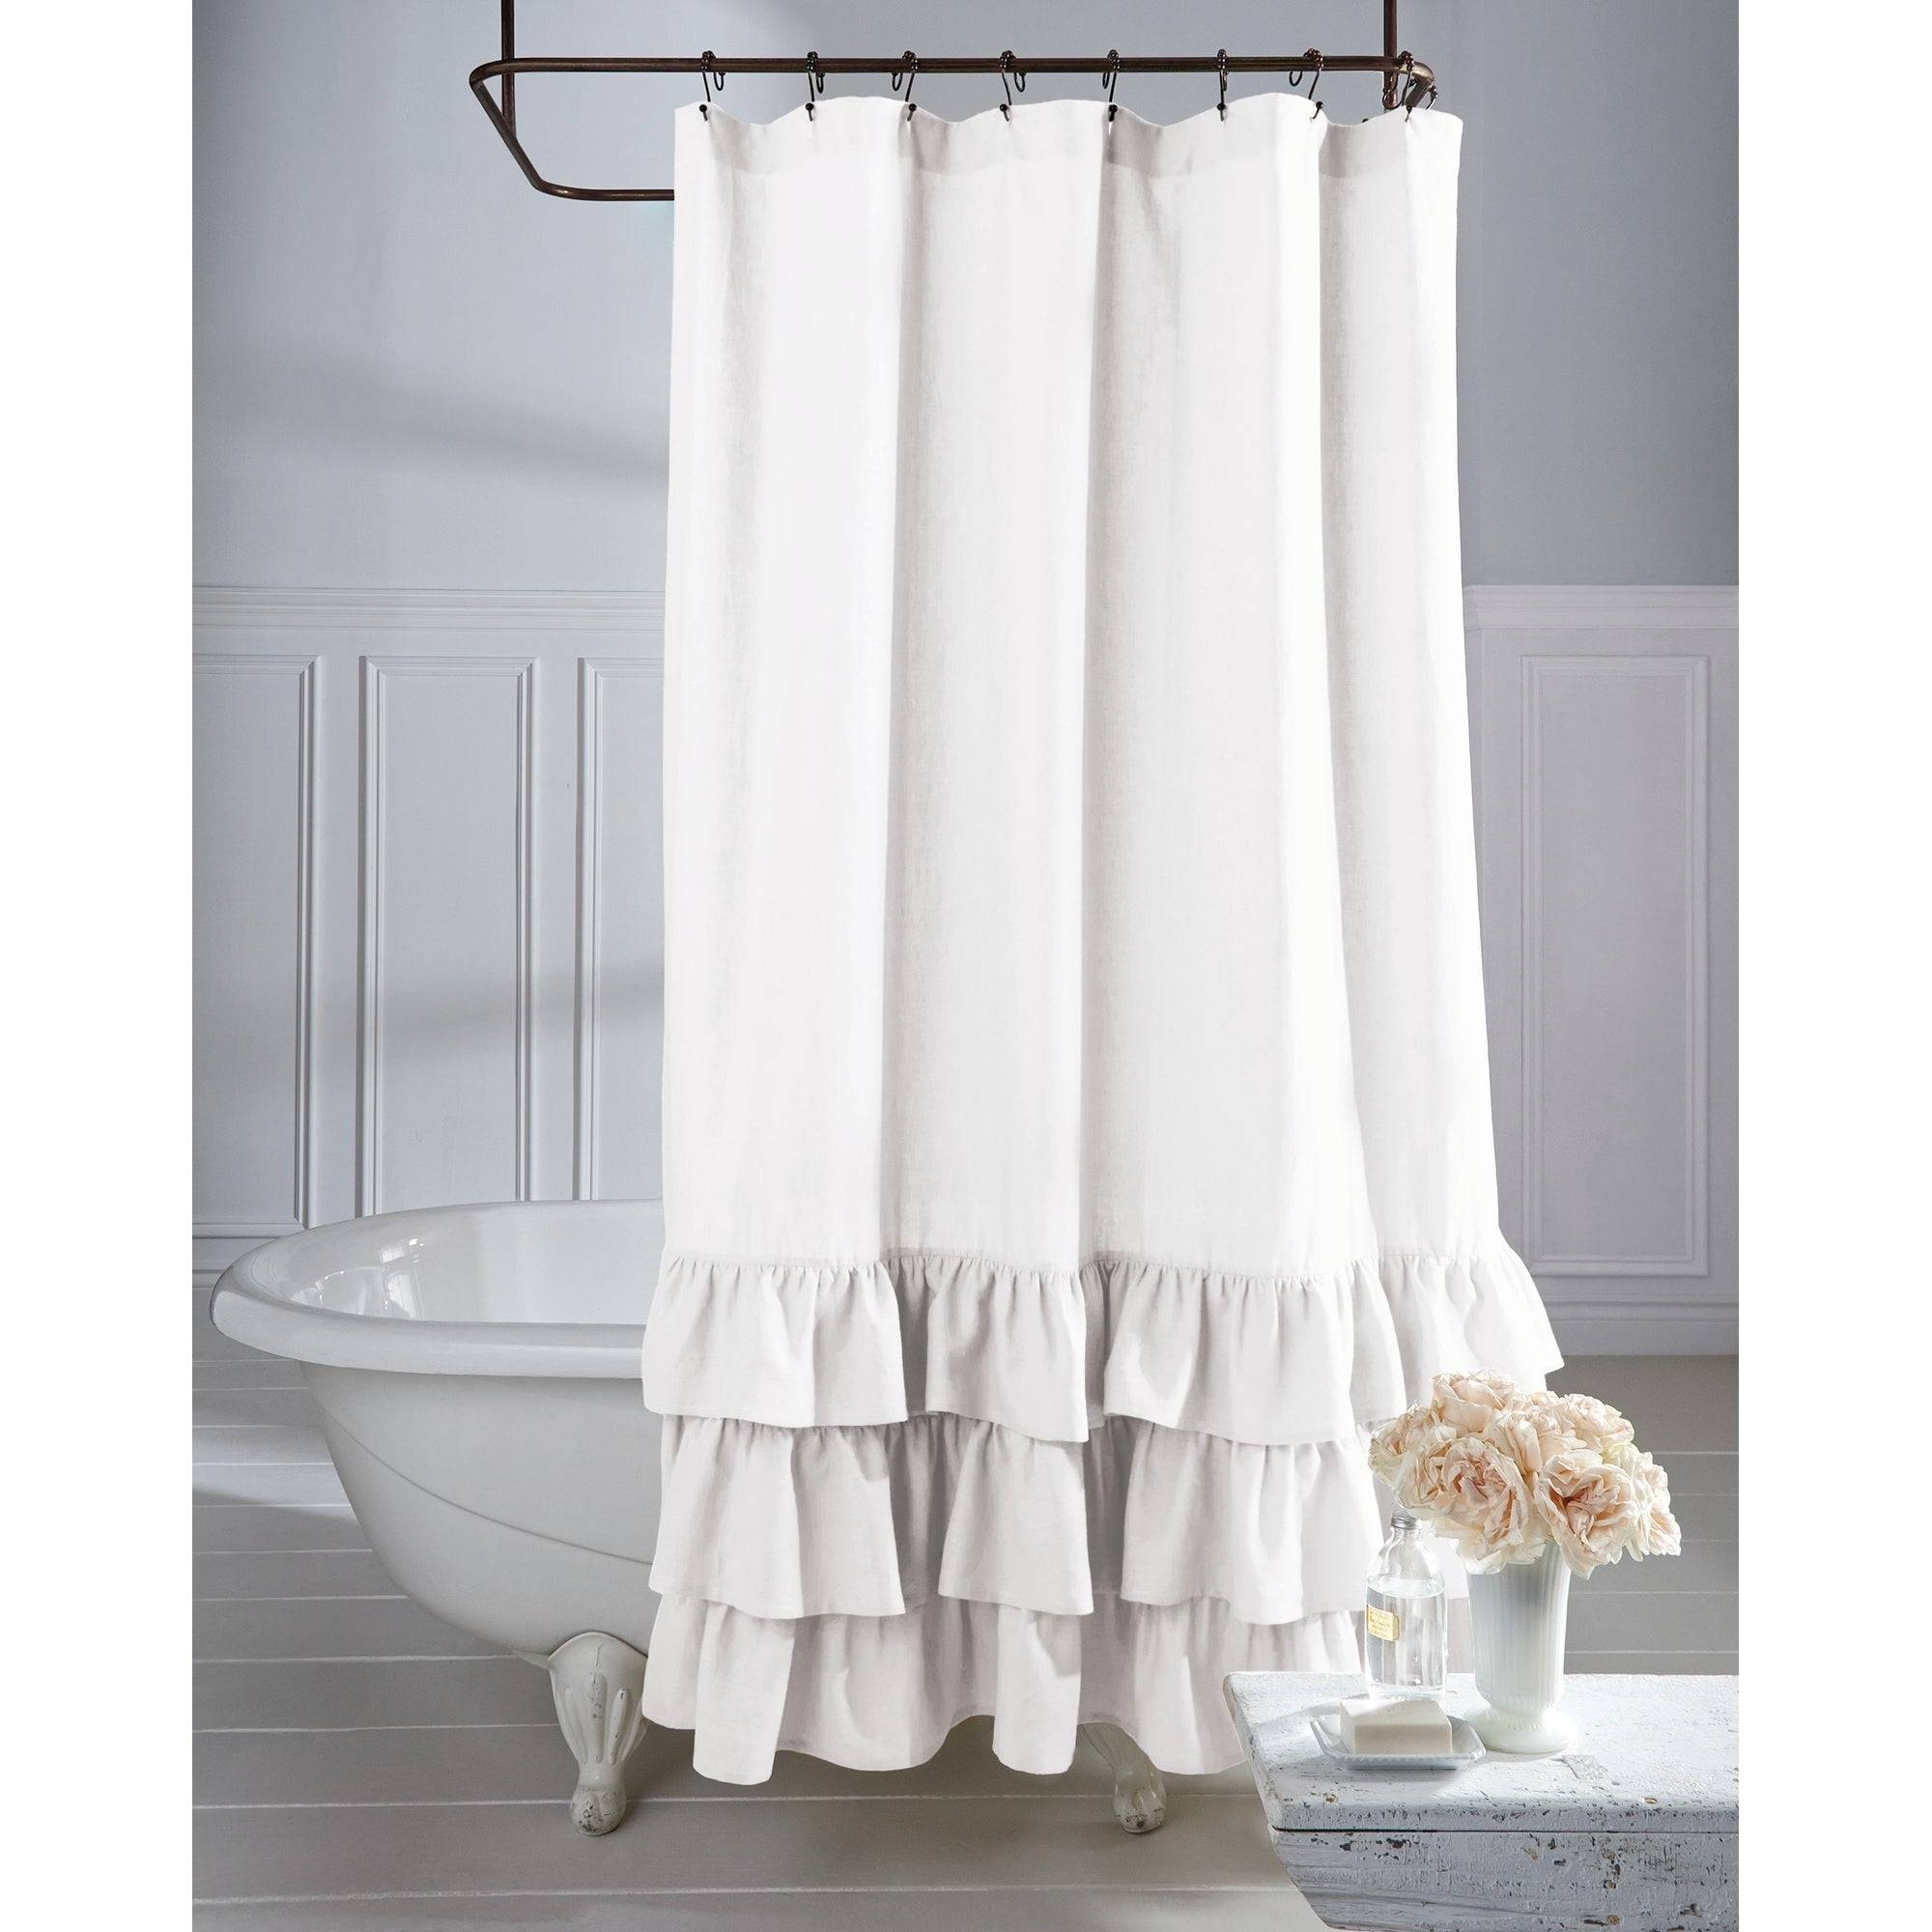 Fascinating Grey Ruffle Shower Curtain Farmhouse Linen Pertaining To Chic Sheer Voile Vertical Ruffled Window Curtain Tiers (View 12 of 20)